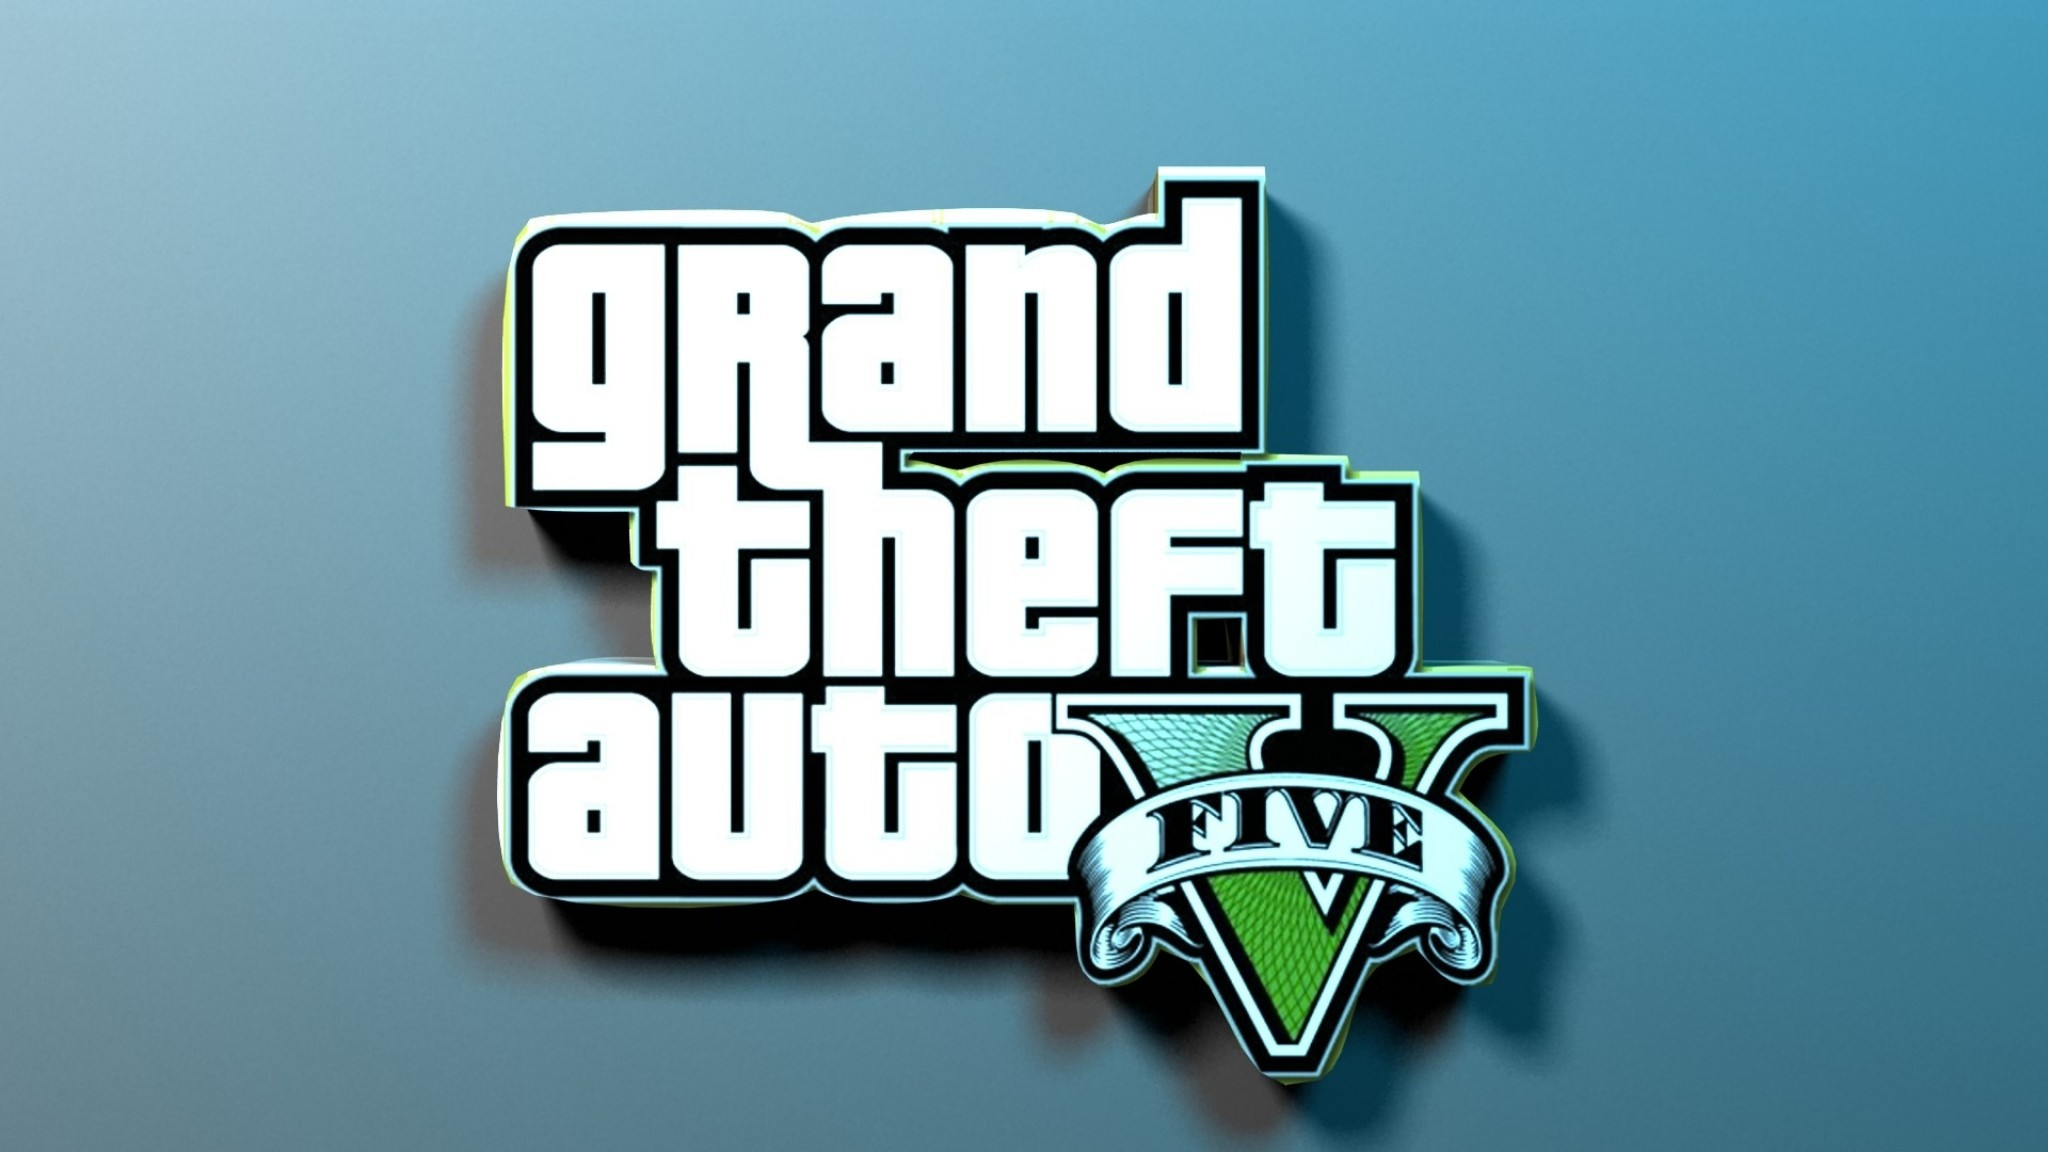 2048x1152 Preview wallpaper gta, grand theft auto 5, game, shadow, name